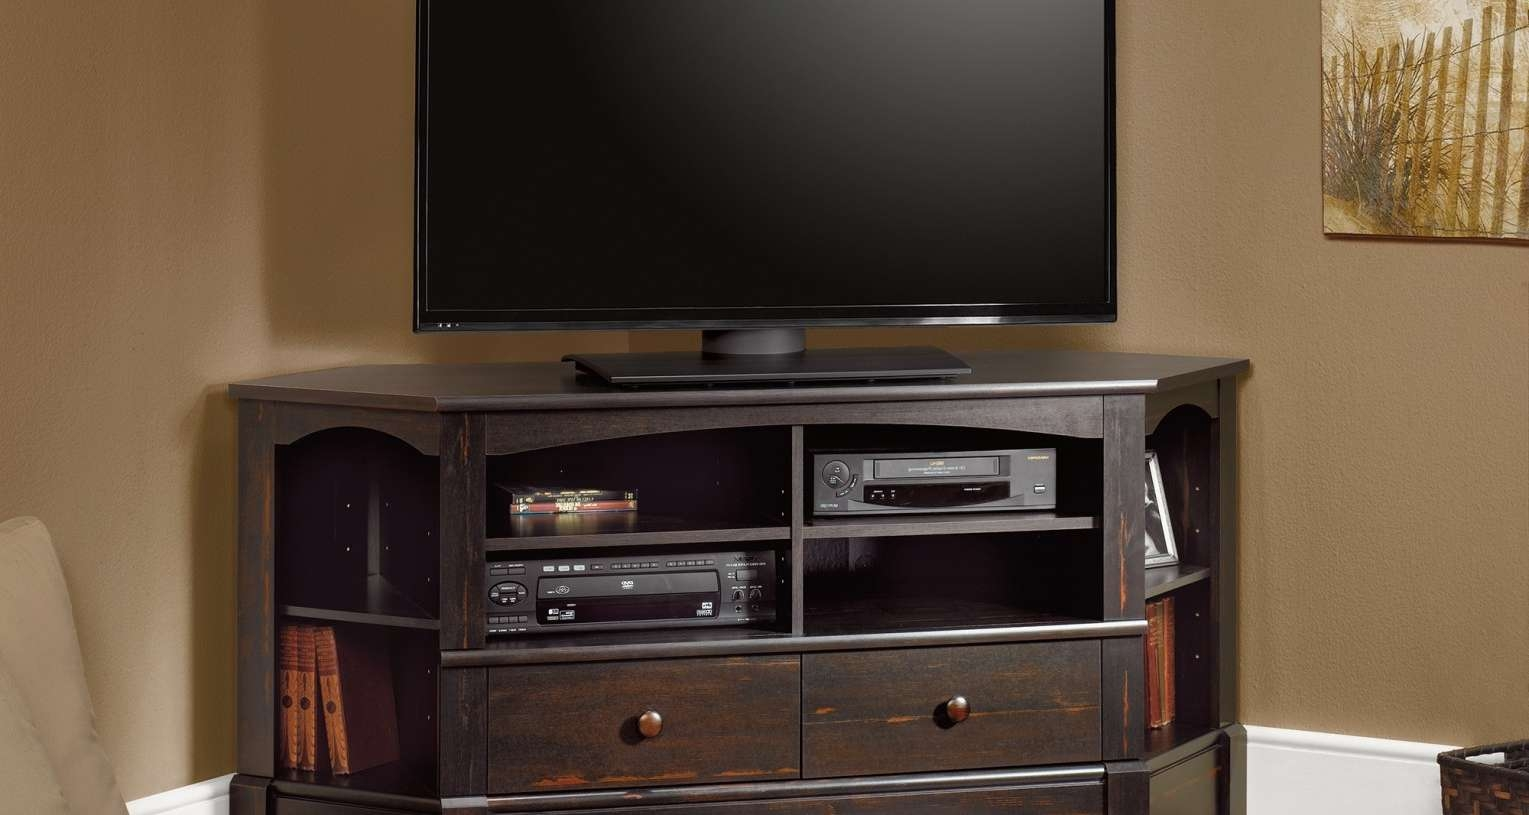 Cabinet : Black Mahogany Wood Corner Tv Stand With Storage Shelves Inside Mahogany Tv Stands (View 4 of 15)